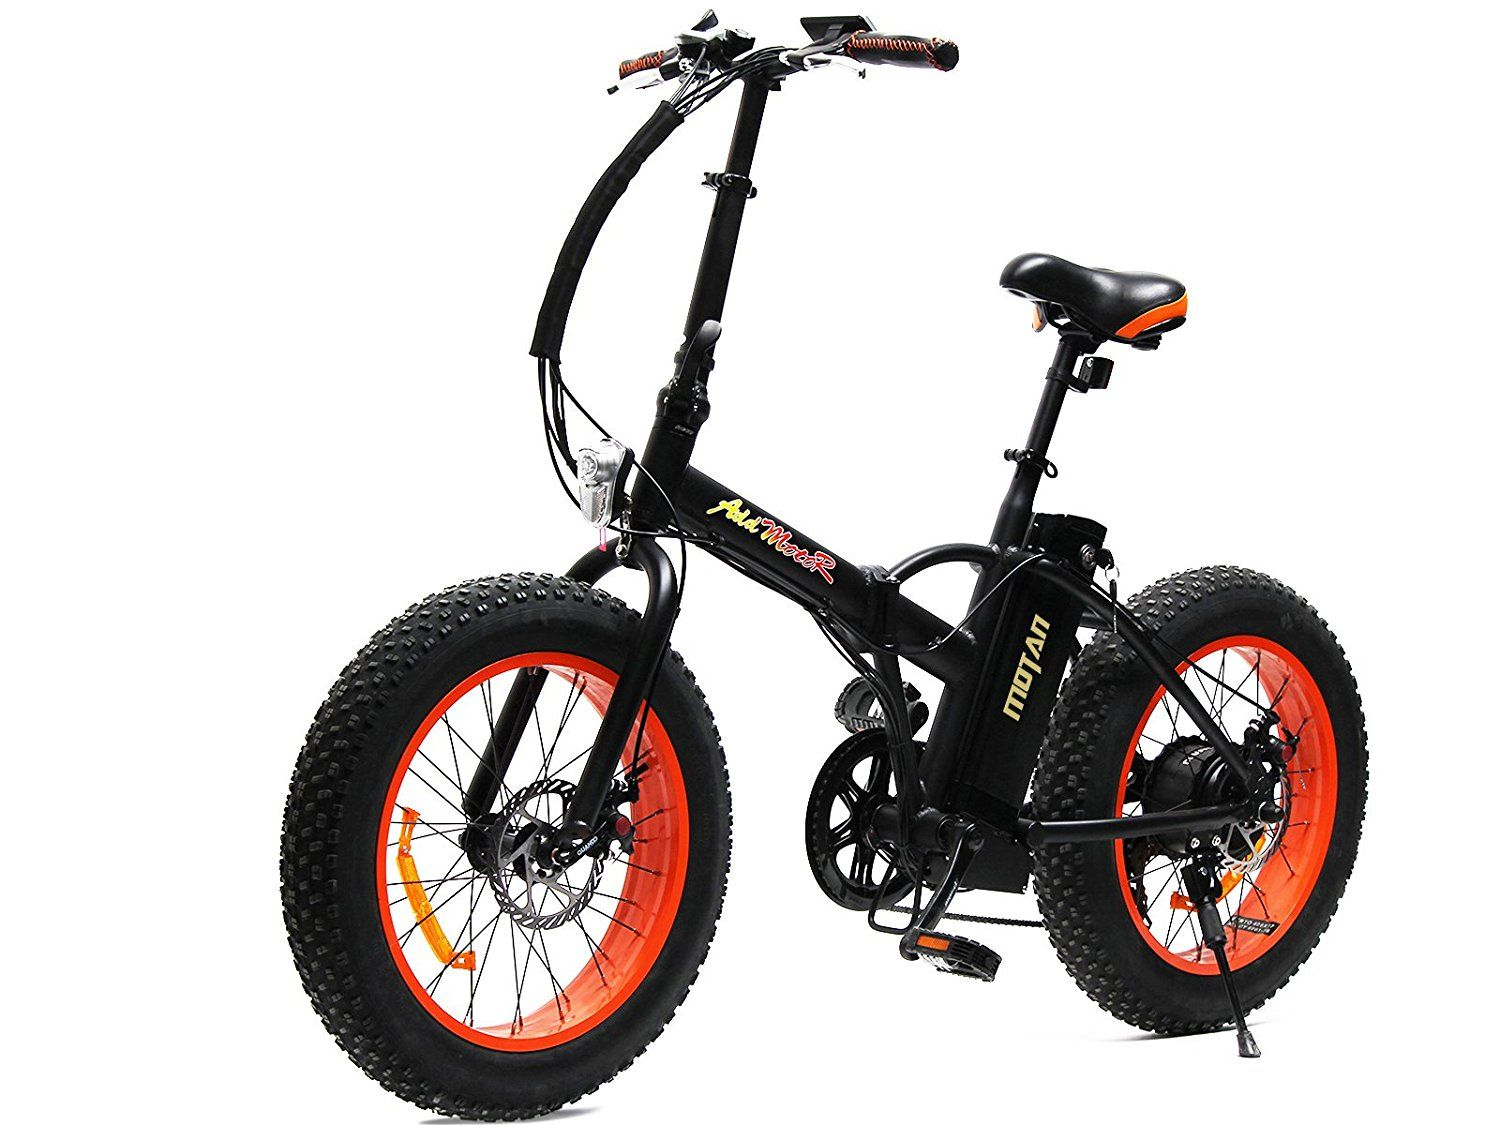 Addmotor Motan New Electric Bicycle Electric Bicycle Pinterest